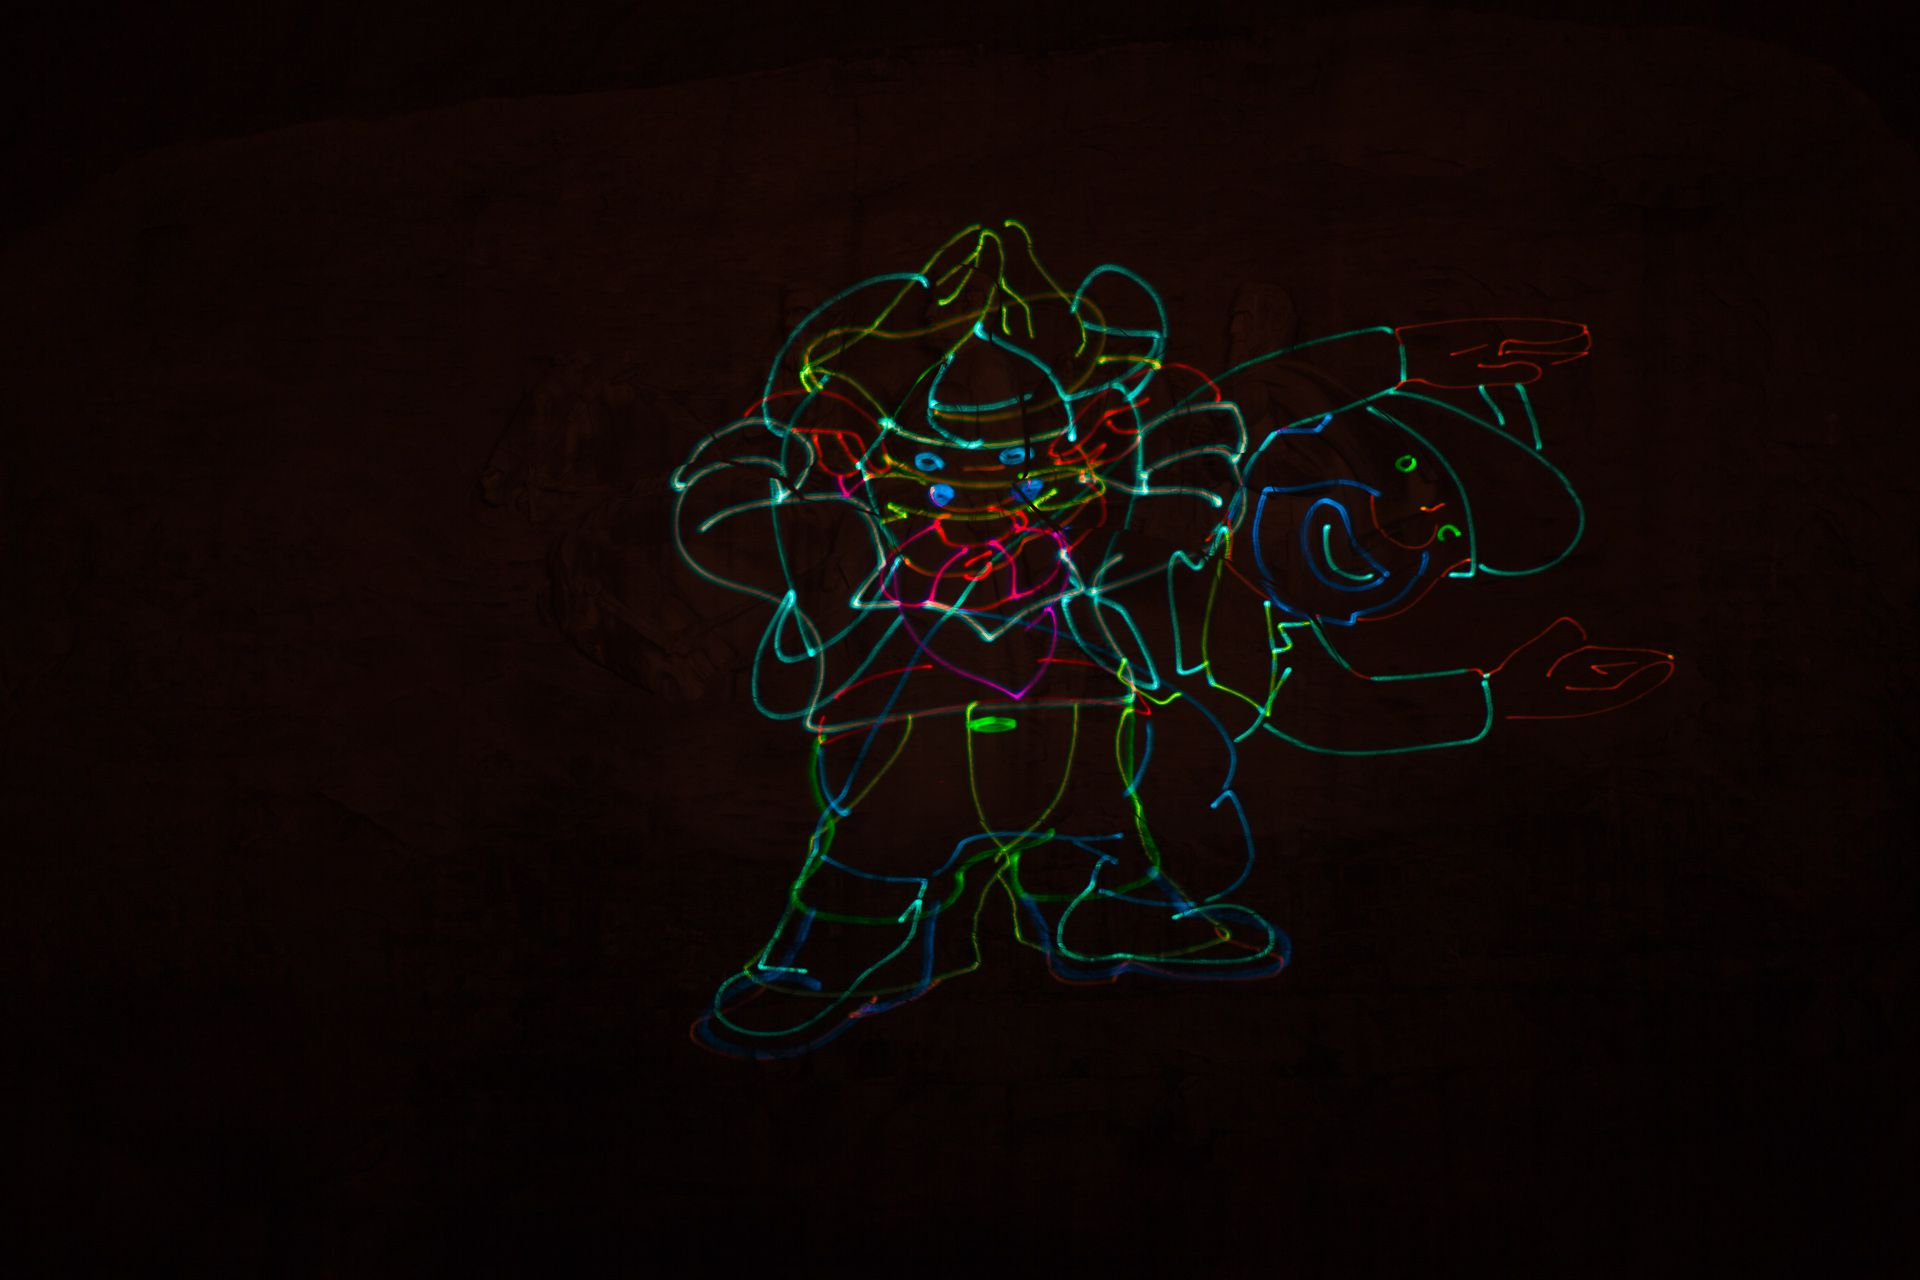 Don't forget to catch the light show at Stone Mountain Park